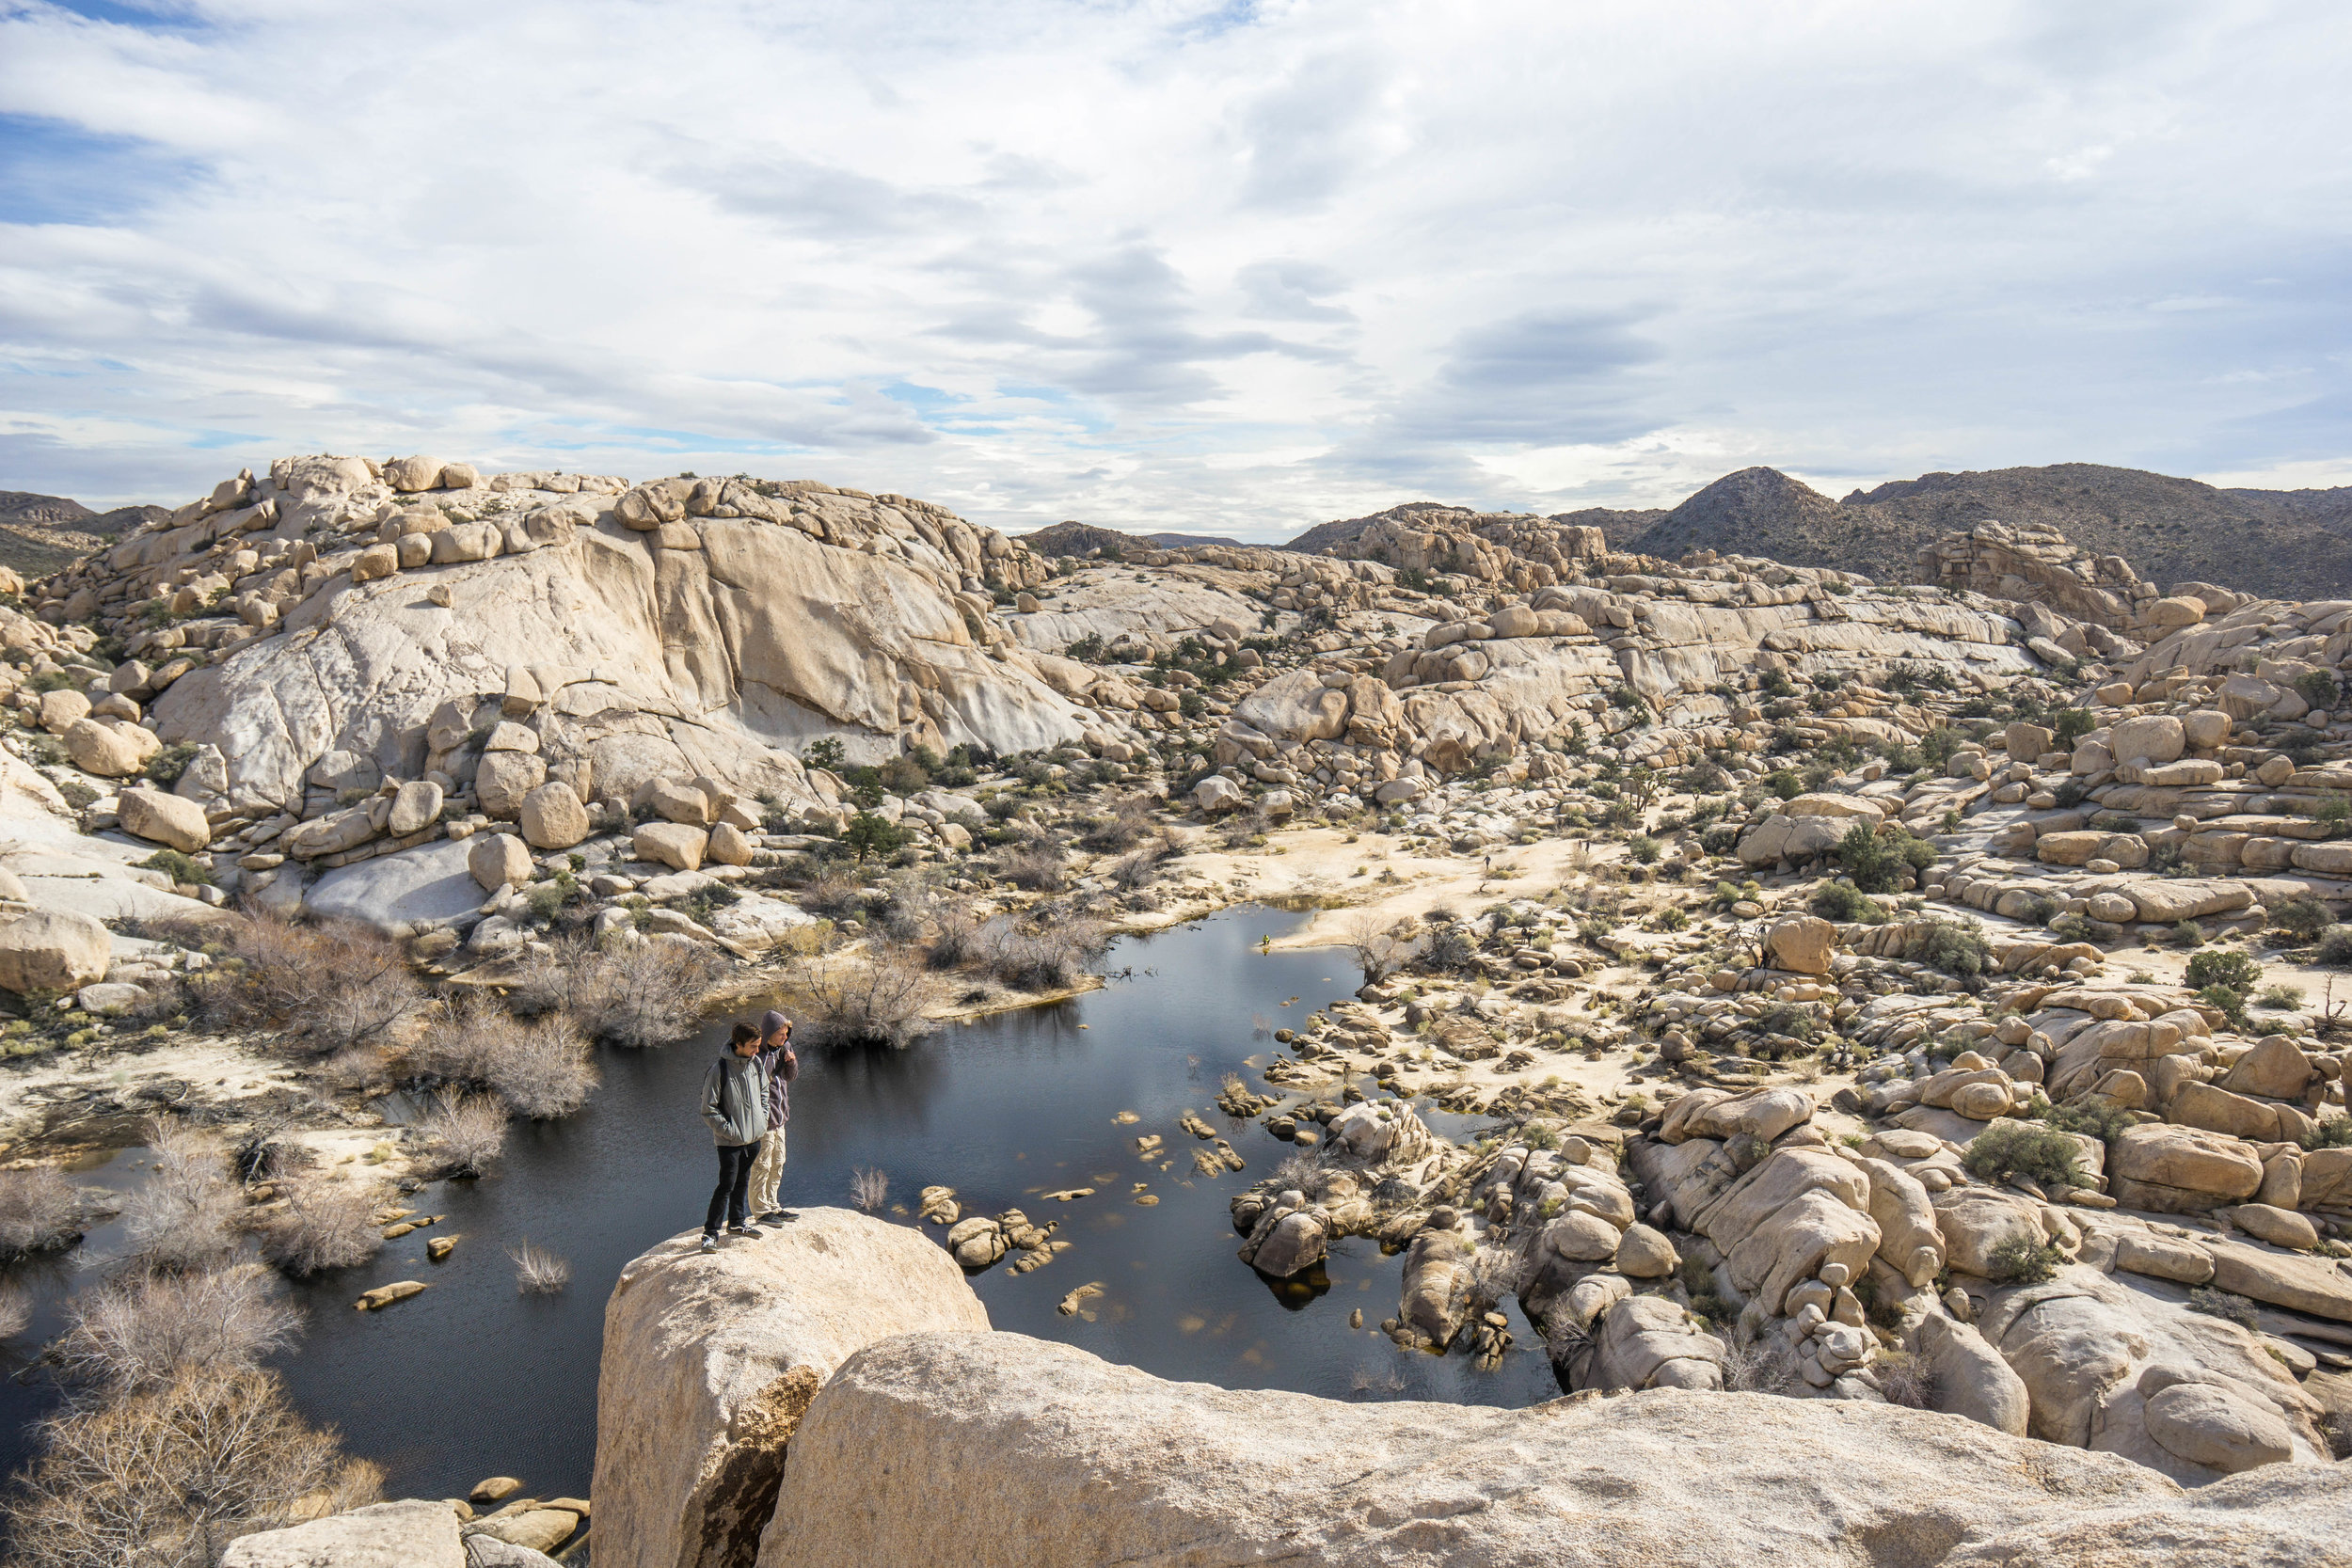 Joshua Tree has no natural lakes, making Barker Dam a refreshing site in the normally bone-dry desert.